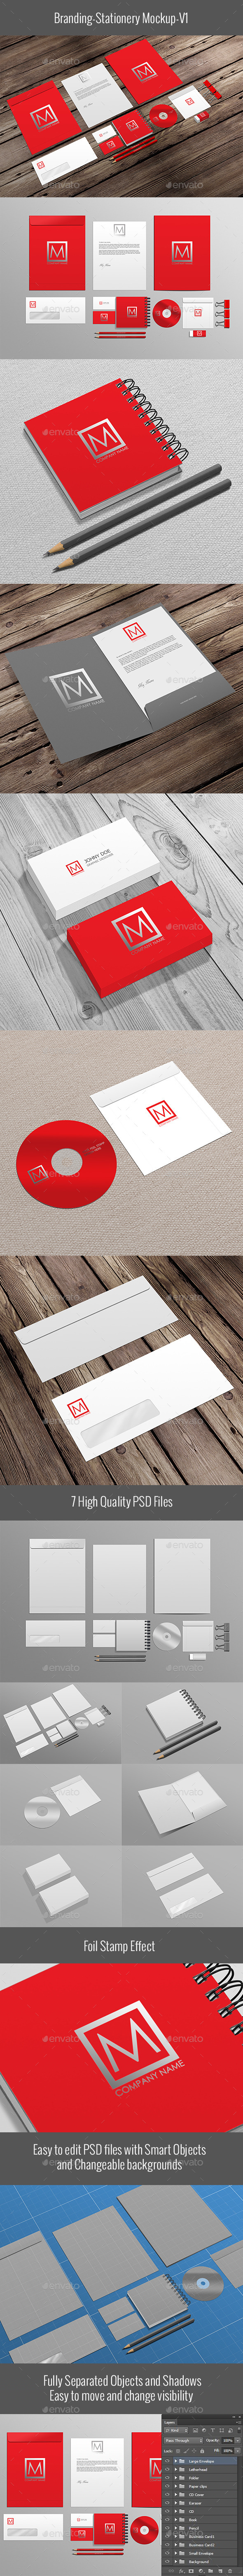 Stationery Mock-ups / Corporate ID (Stationery)